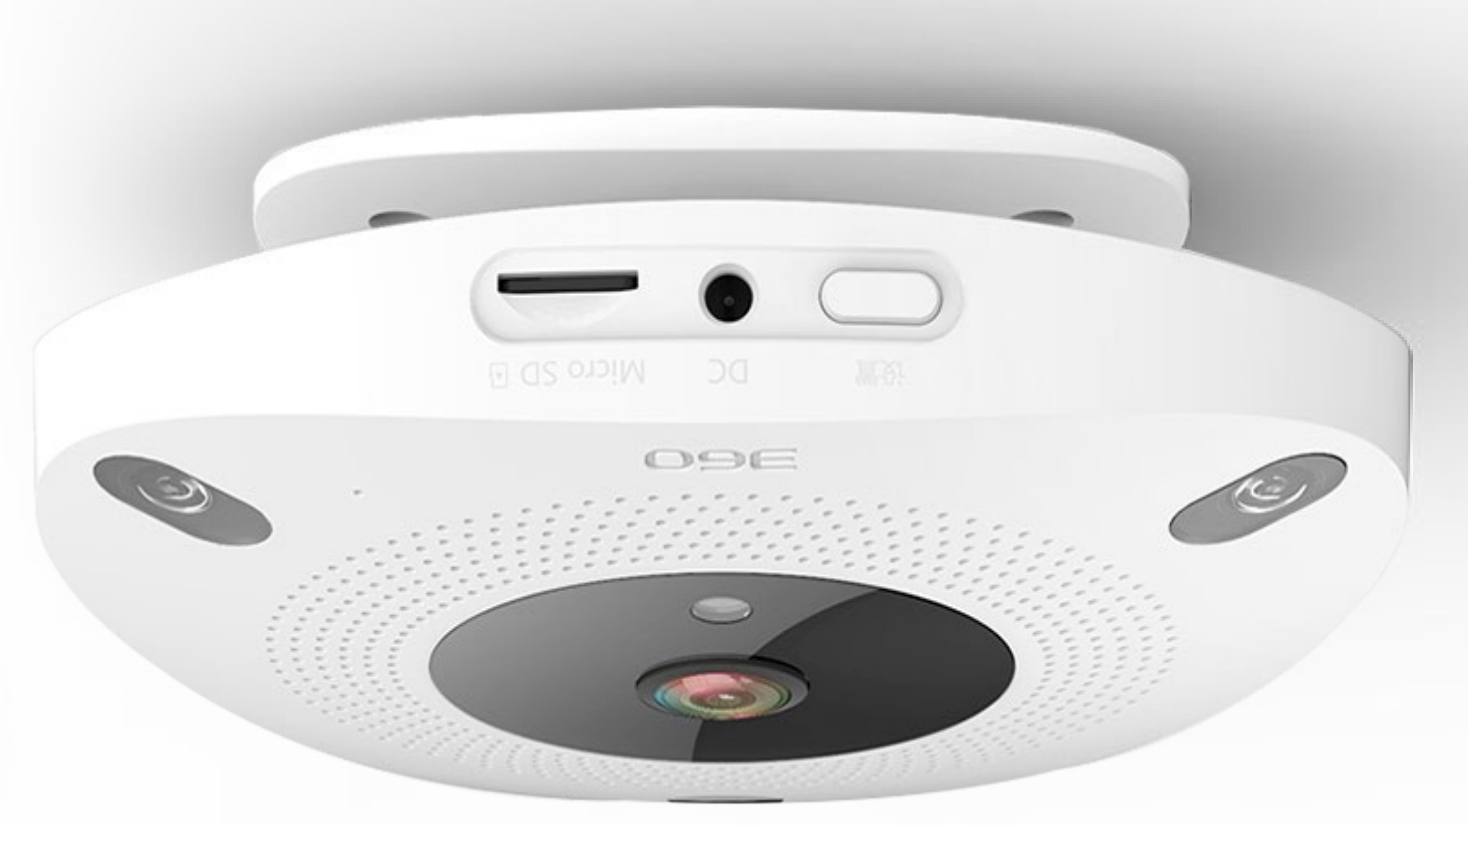 360&deg-panoramic-view-smart-indoor-camera-